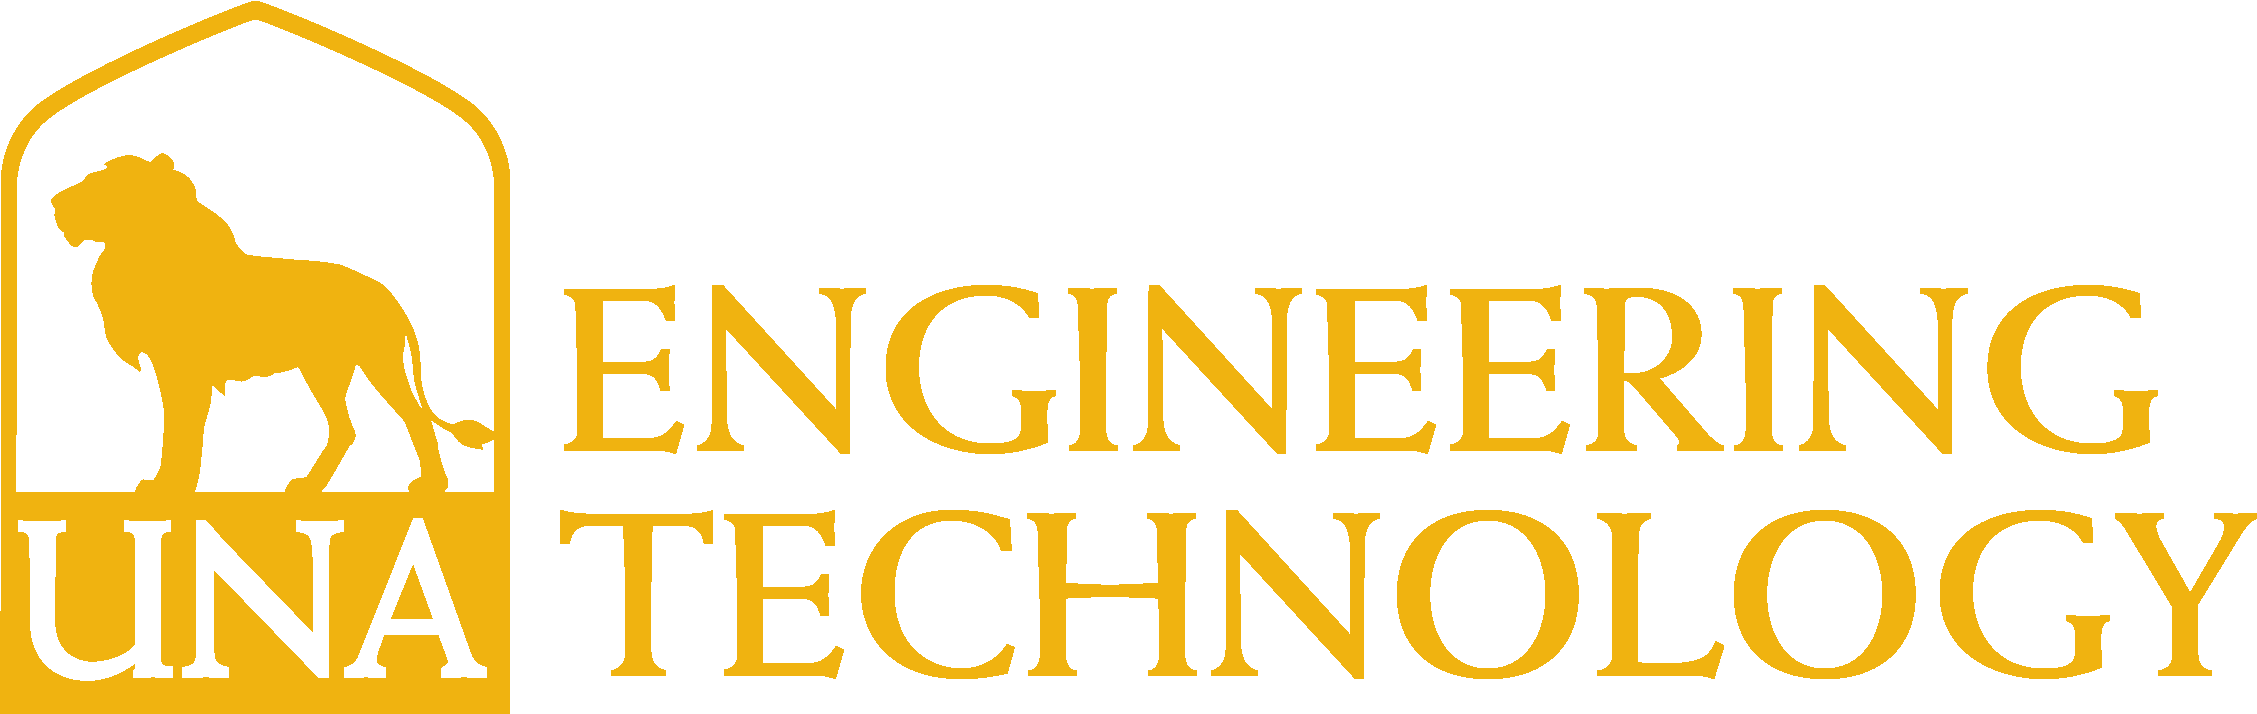 College of Arts and Sciences - Engineering Logo - Gold - Version 3